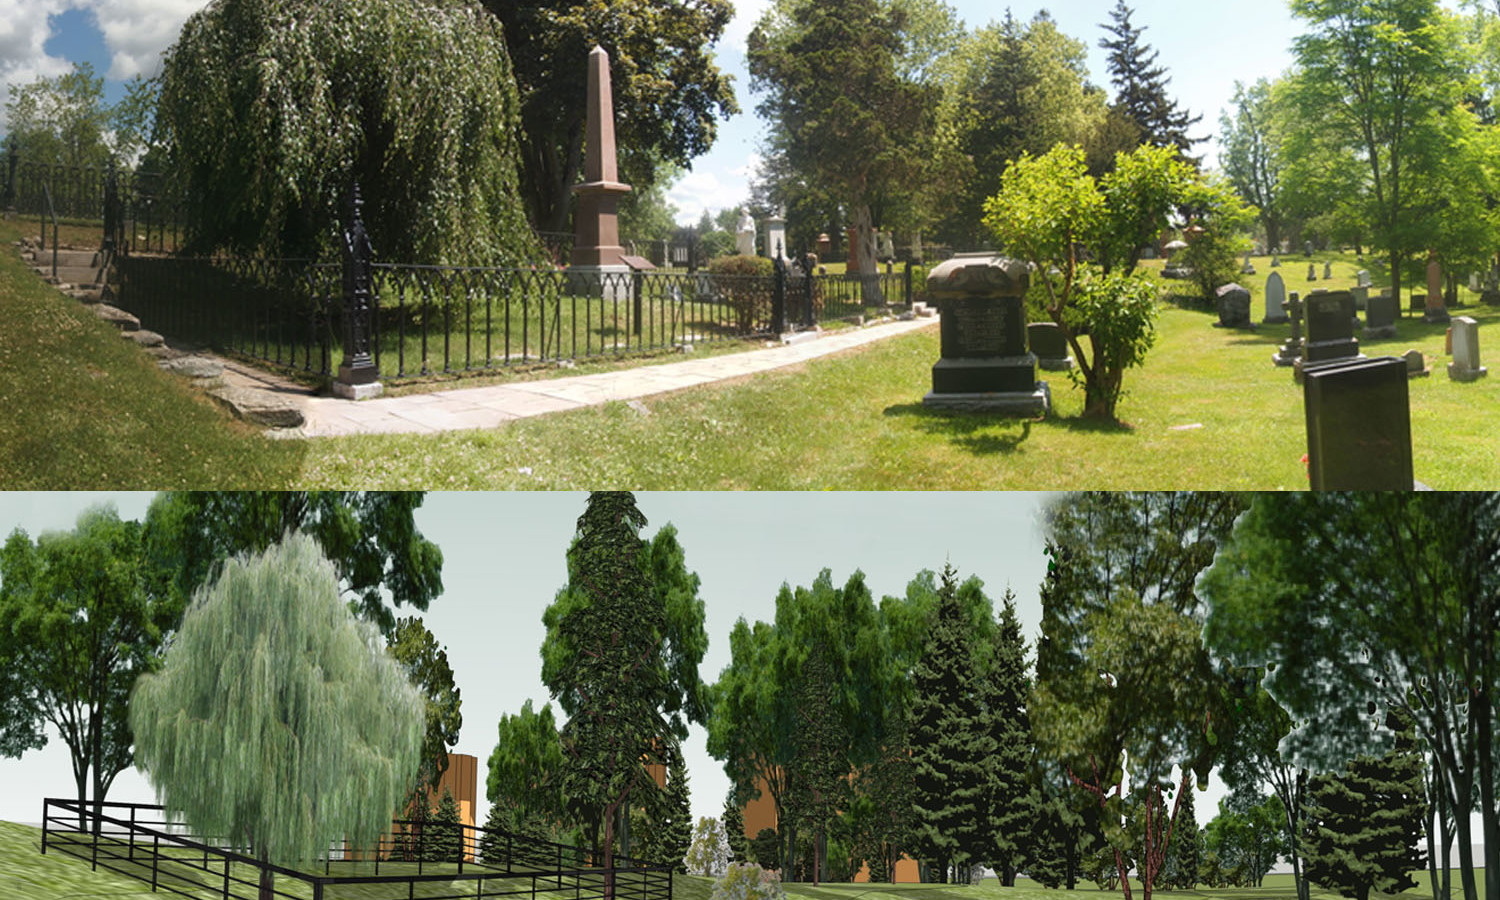 Purdy's Mills – Cataraqui Cemetery / Sir John A. Macdonald Gravesite NHSC Heritage Image Assessment